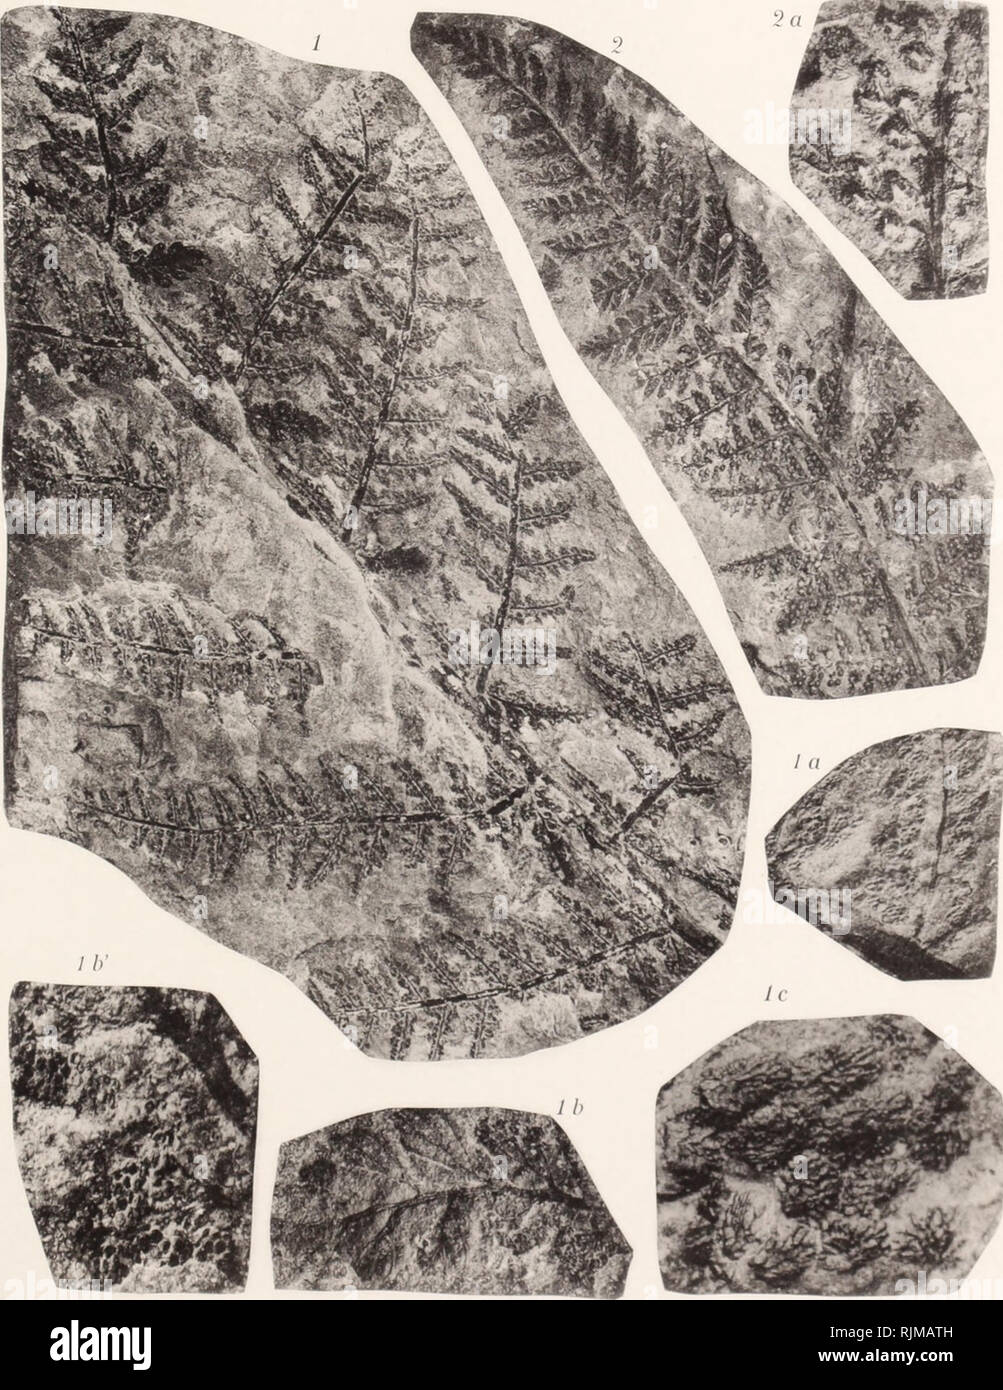 . Bassin houiller et permien de Blanzy et du Creusot. Coal; Coal; Coal; Coal; Plants, Fossil; Plants, Fossil; Geology; Geology. Pl. 11. Clichés et Phototypie Sohier el O. a ChMinpigiiv-sur-Miirn.. Please note that these images are extracted from scanned page images that may have been digitally enhanced for readability - coloration and appearance of these illustrations may not perfectly resemble the original work.. Delafond, Frédéric, 1842-1933; Zeiller, R. (René), 1847-1915. Paris, Imprimerie nationale - Stock Image